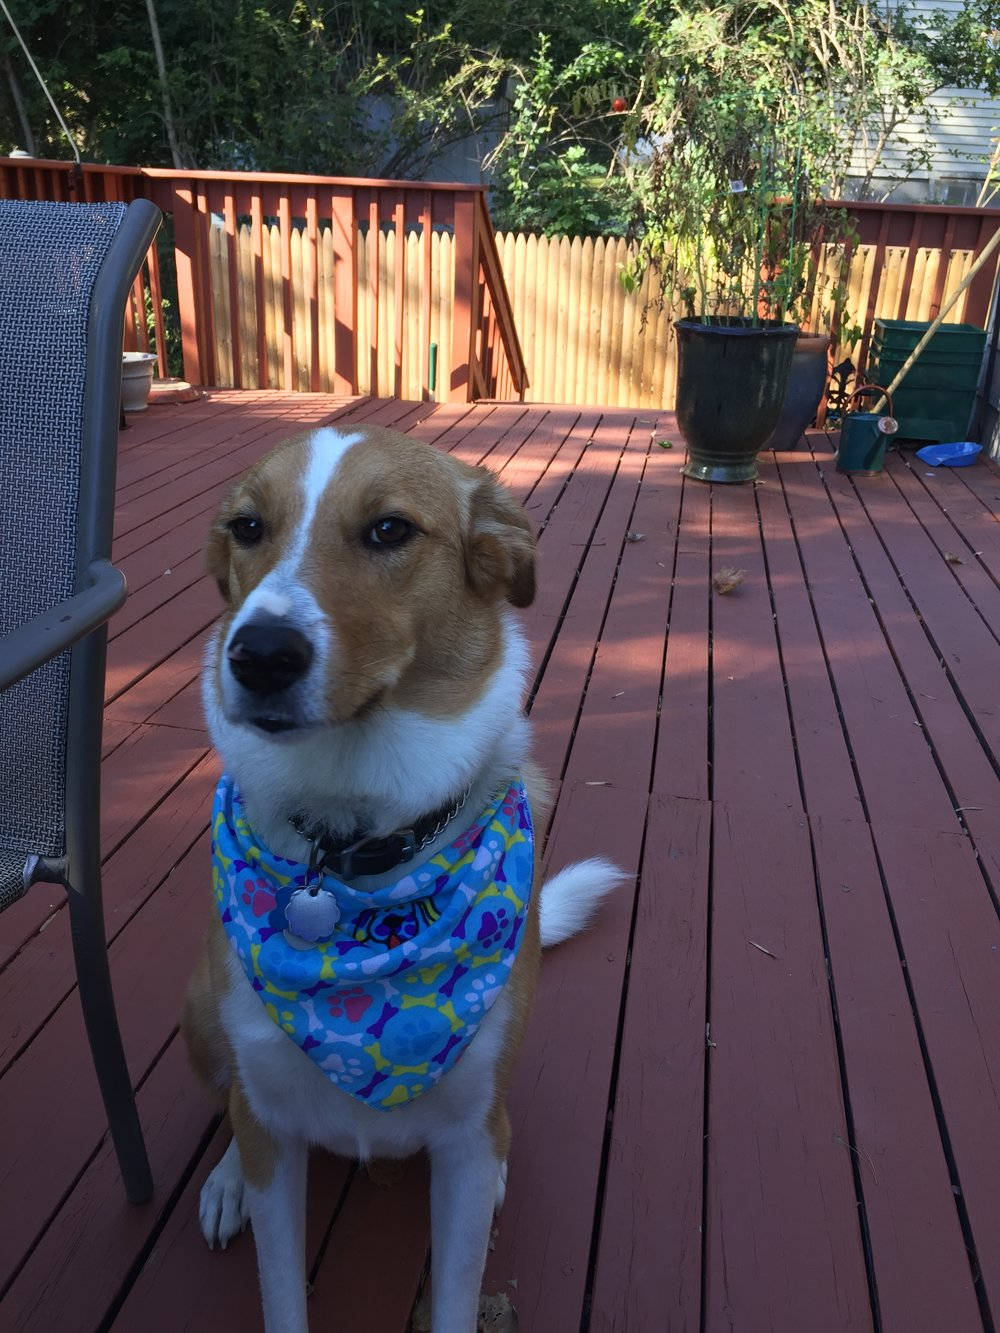 We've tried out the bandanna look this past year. I think it suits her.